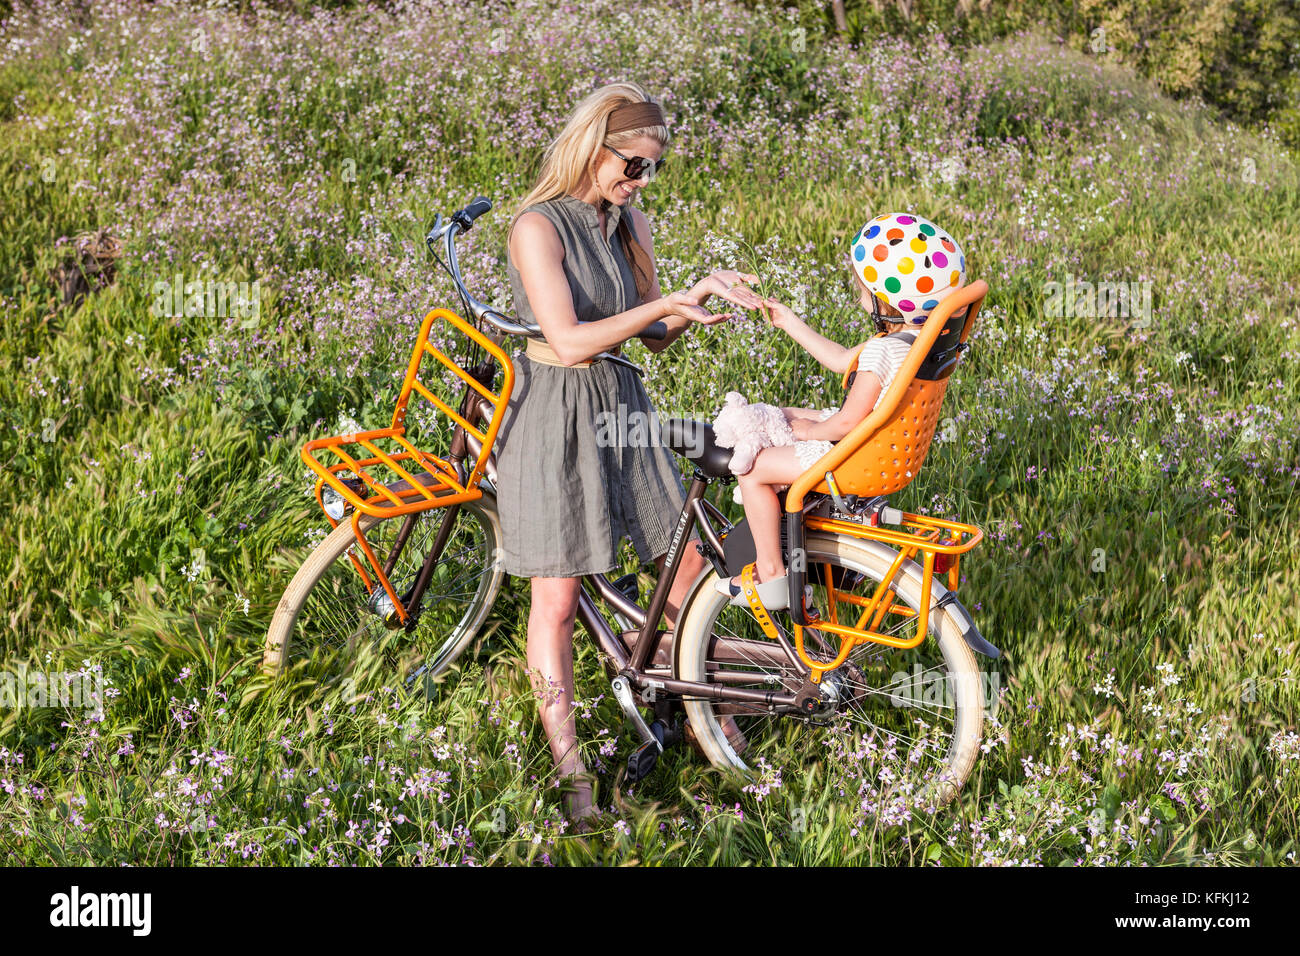 LOS ANGELES, CA – JULY 11: Woman rides a bicycle on a path over looking the ocean in Los Angeles, California on Stock Photo